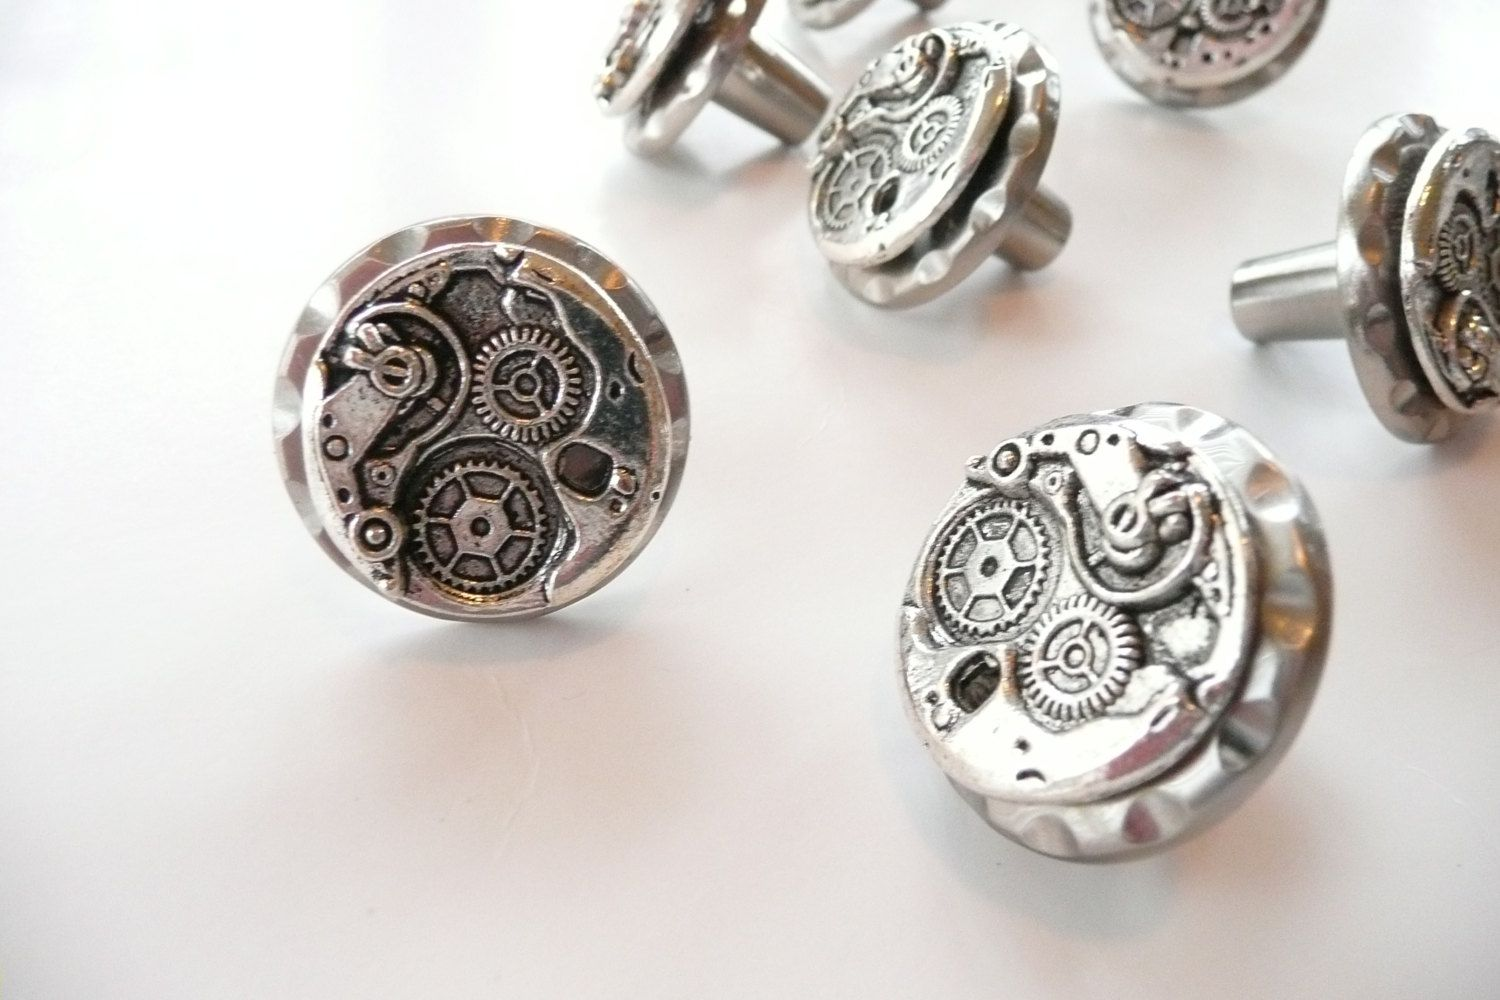 Https://www.etsy.com/listing/121946996/steampunk Watch Movement Cabinet  Knobs